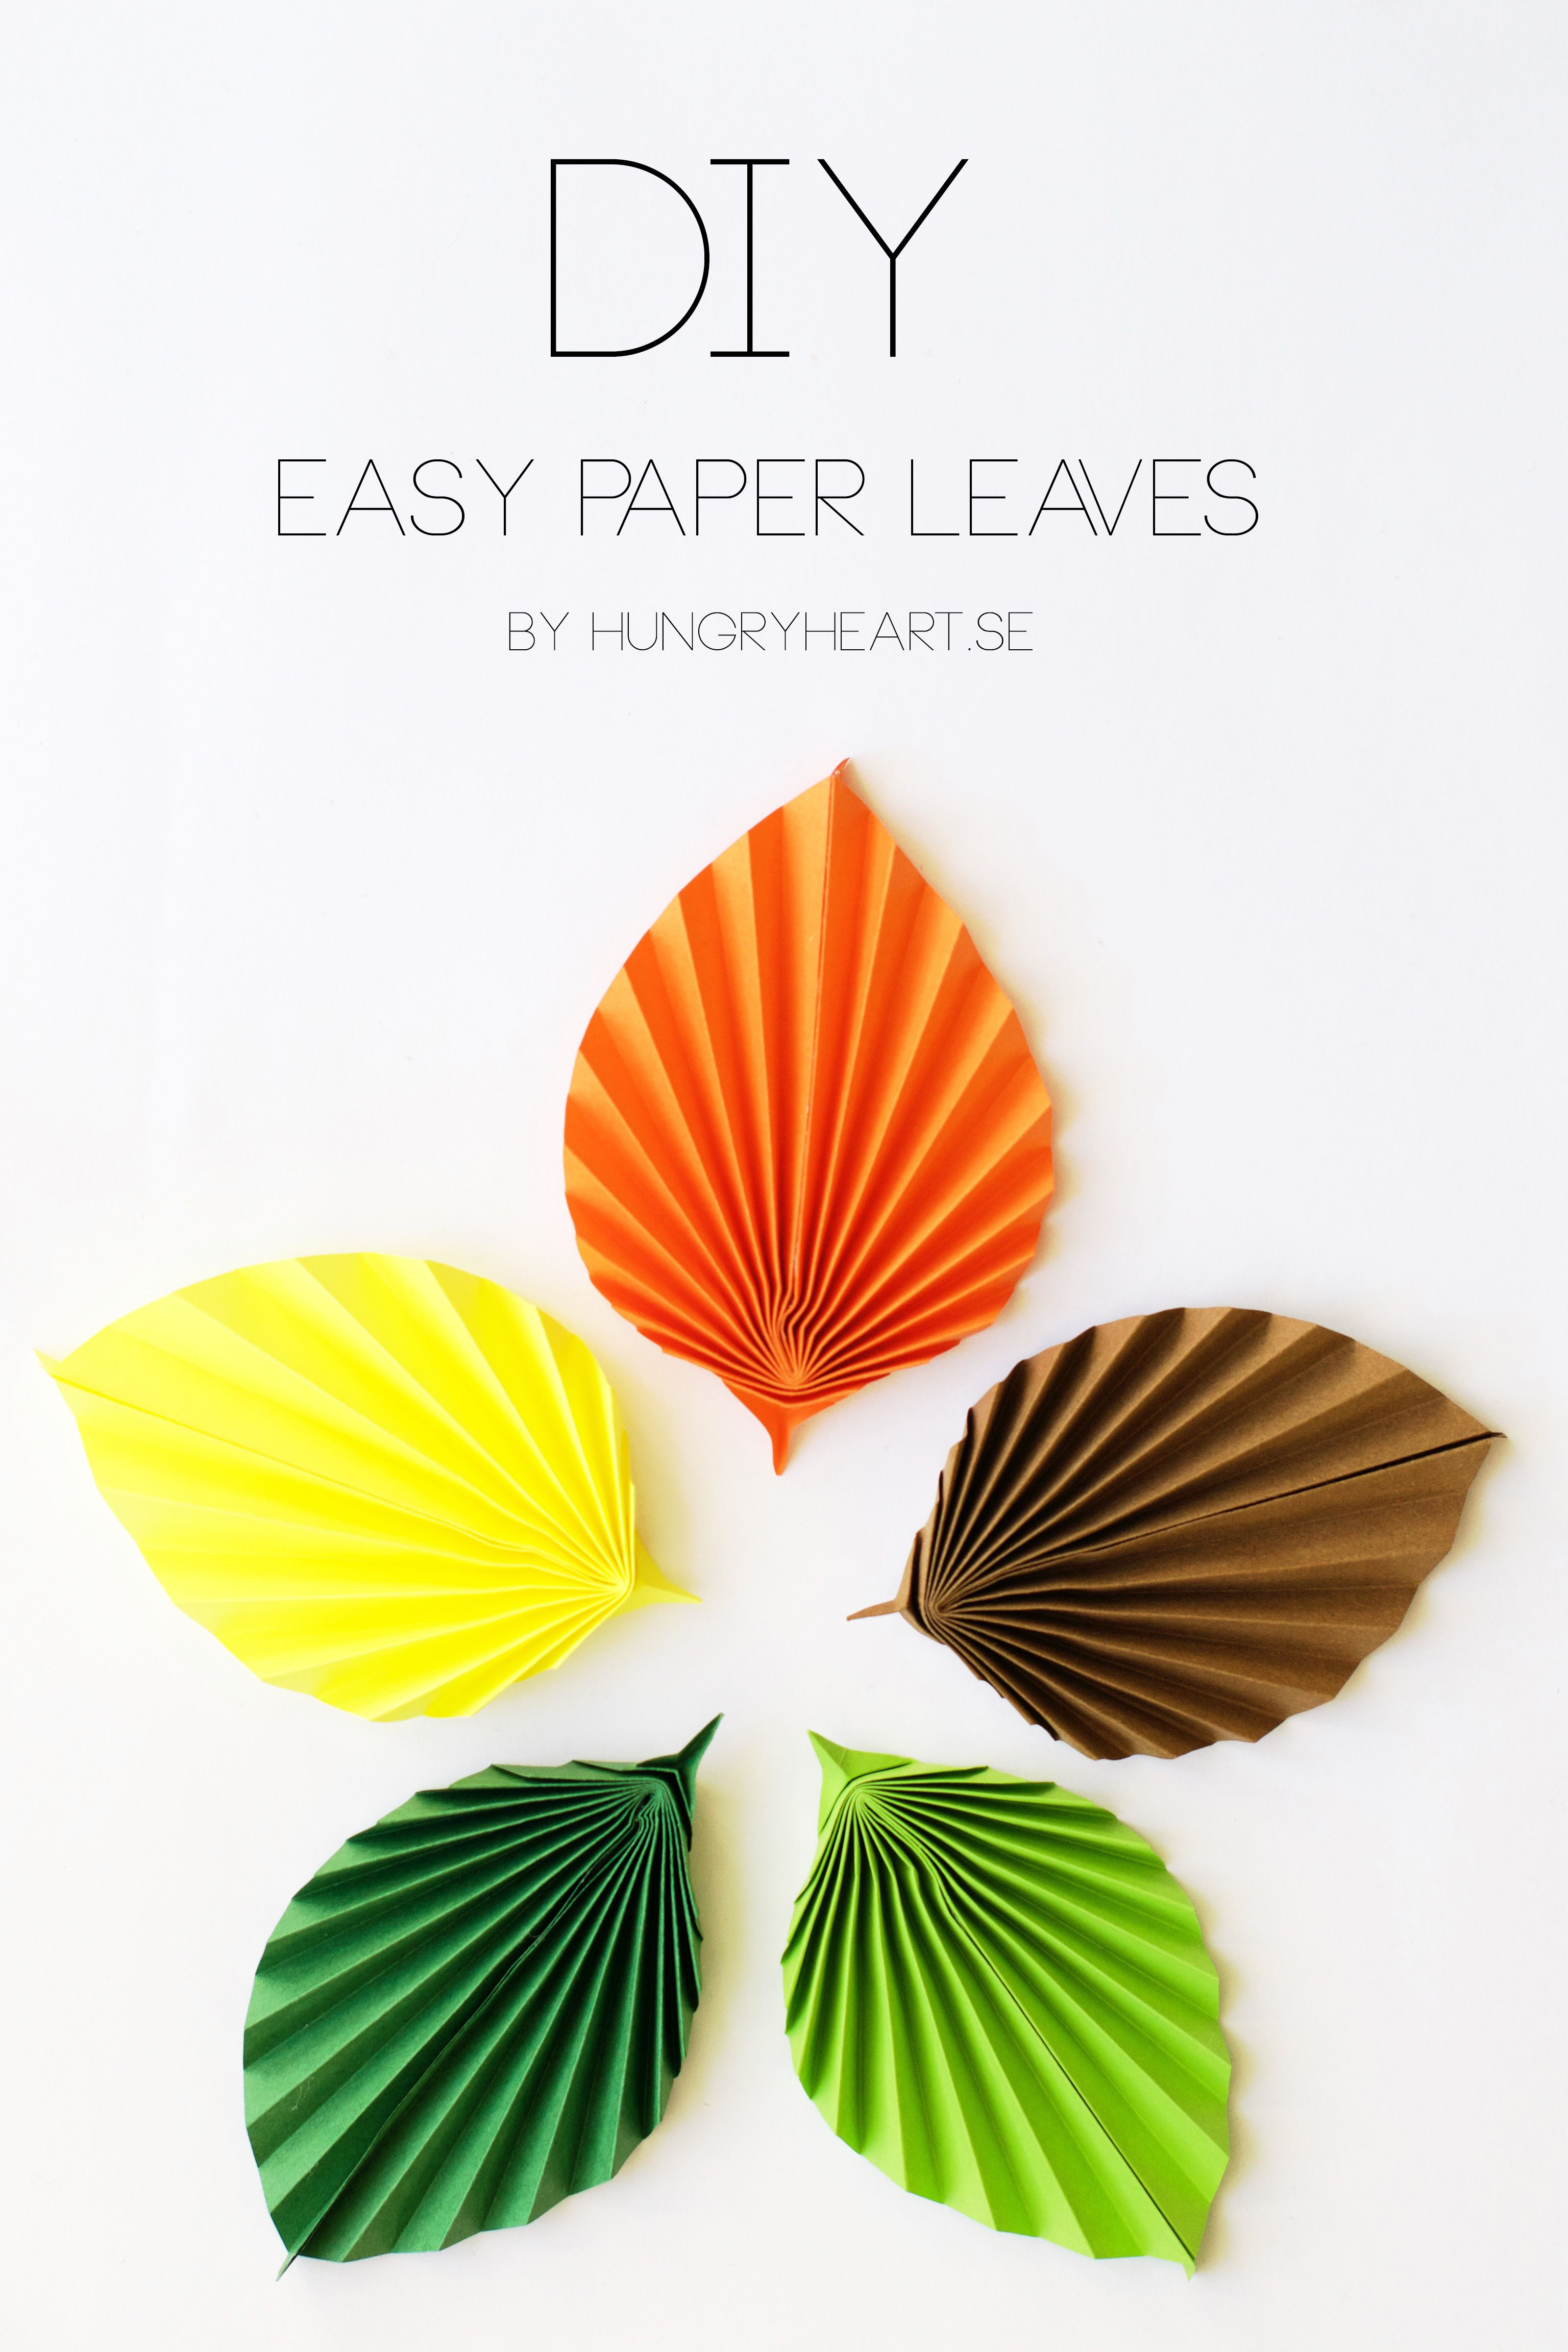 Diy Easy Paper Leaves Tutorial Hungry Heart Otoo Pinterest